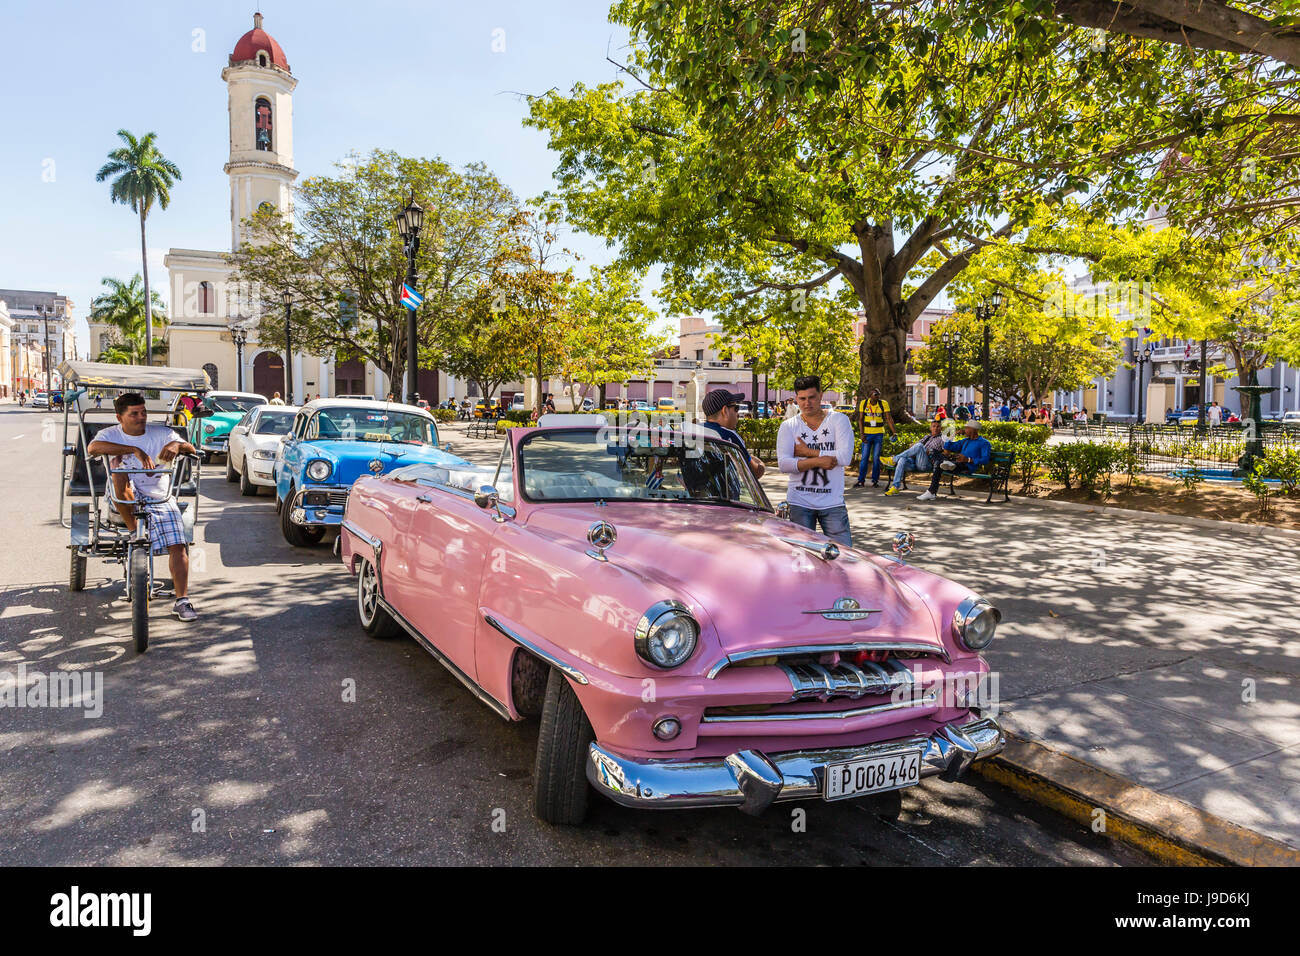 Classic 1950's Plymouth taxi, locally known as almendrones in the town of Cienfuegos, Cuba, West Indies, Caribbean - Stock Image